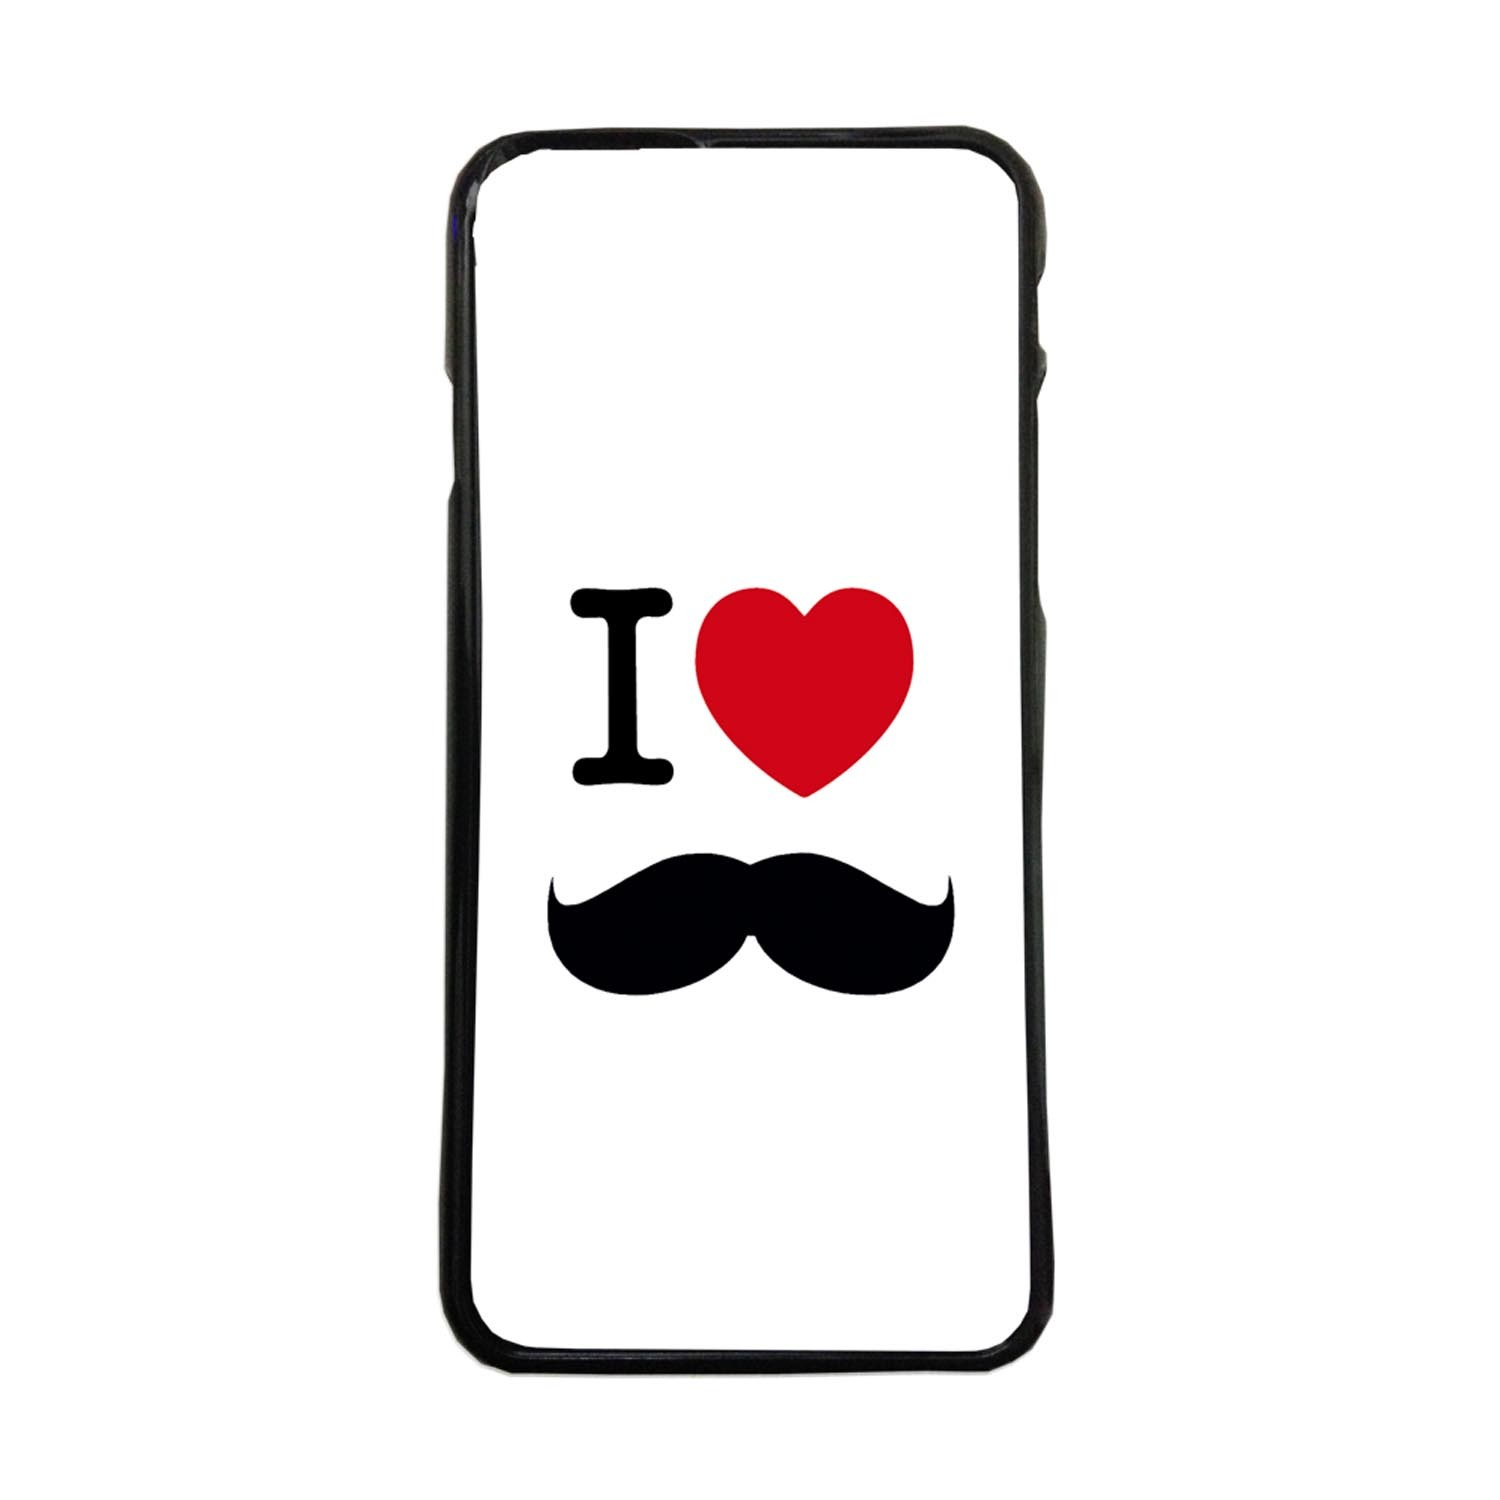 Fundas de movil carcasas compatible con iphone se I love bigotes